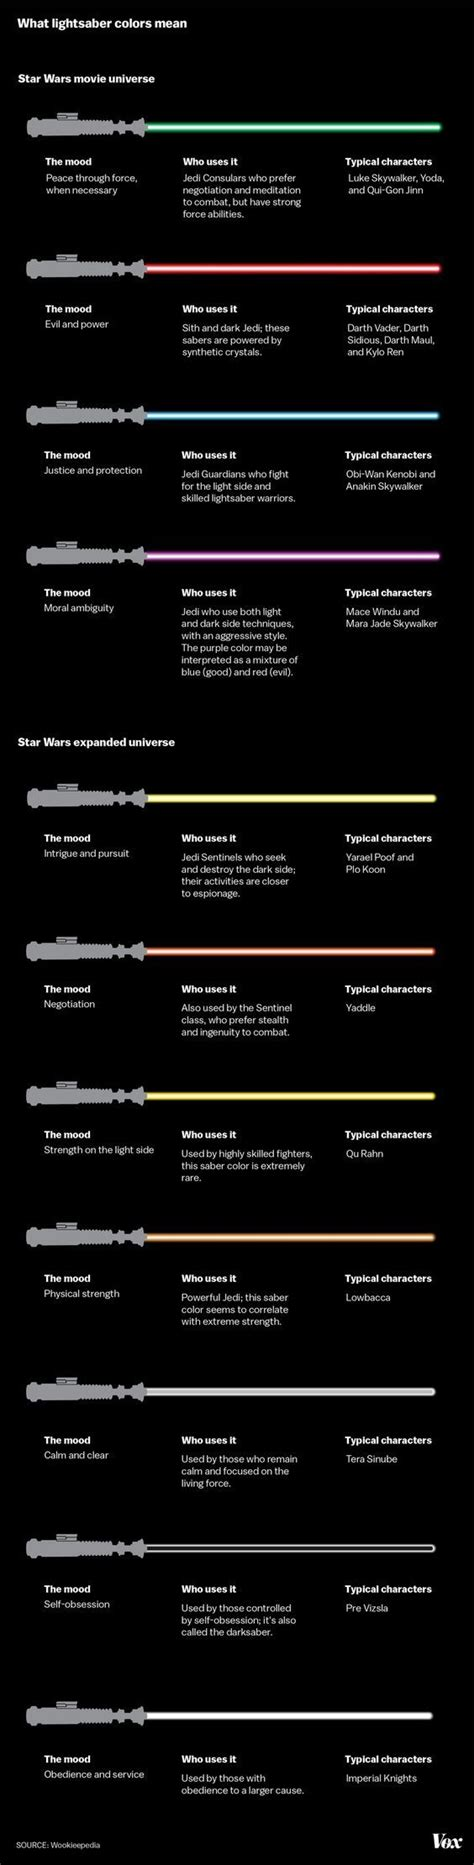 do lightsaber colors anything why do the lightsabers in the wars